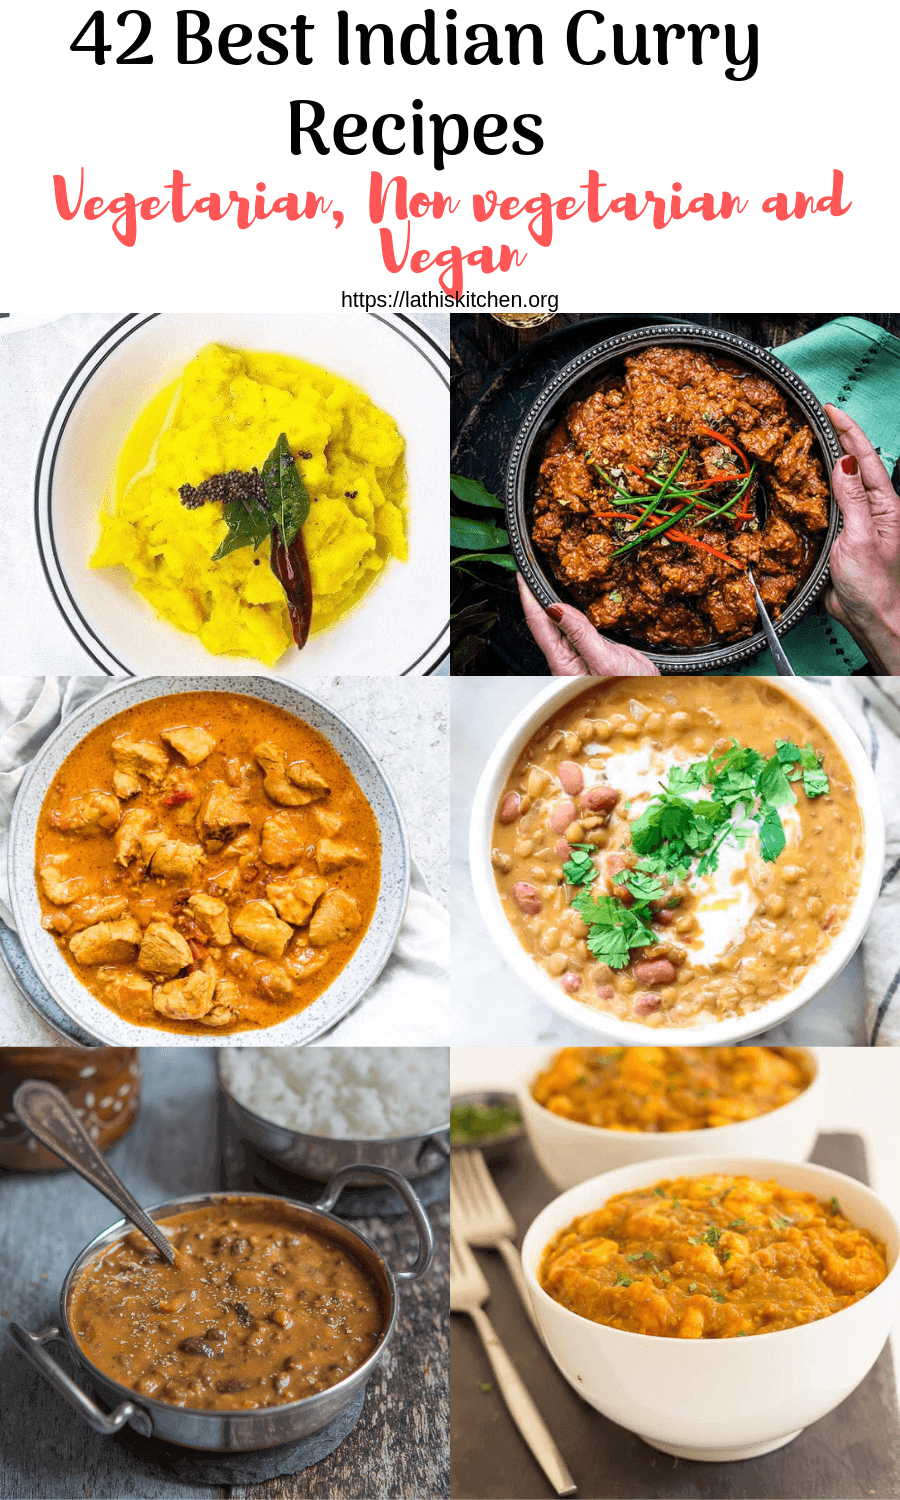 Collection of Indian Curries.